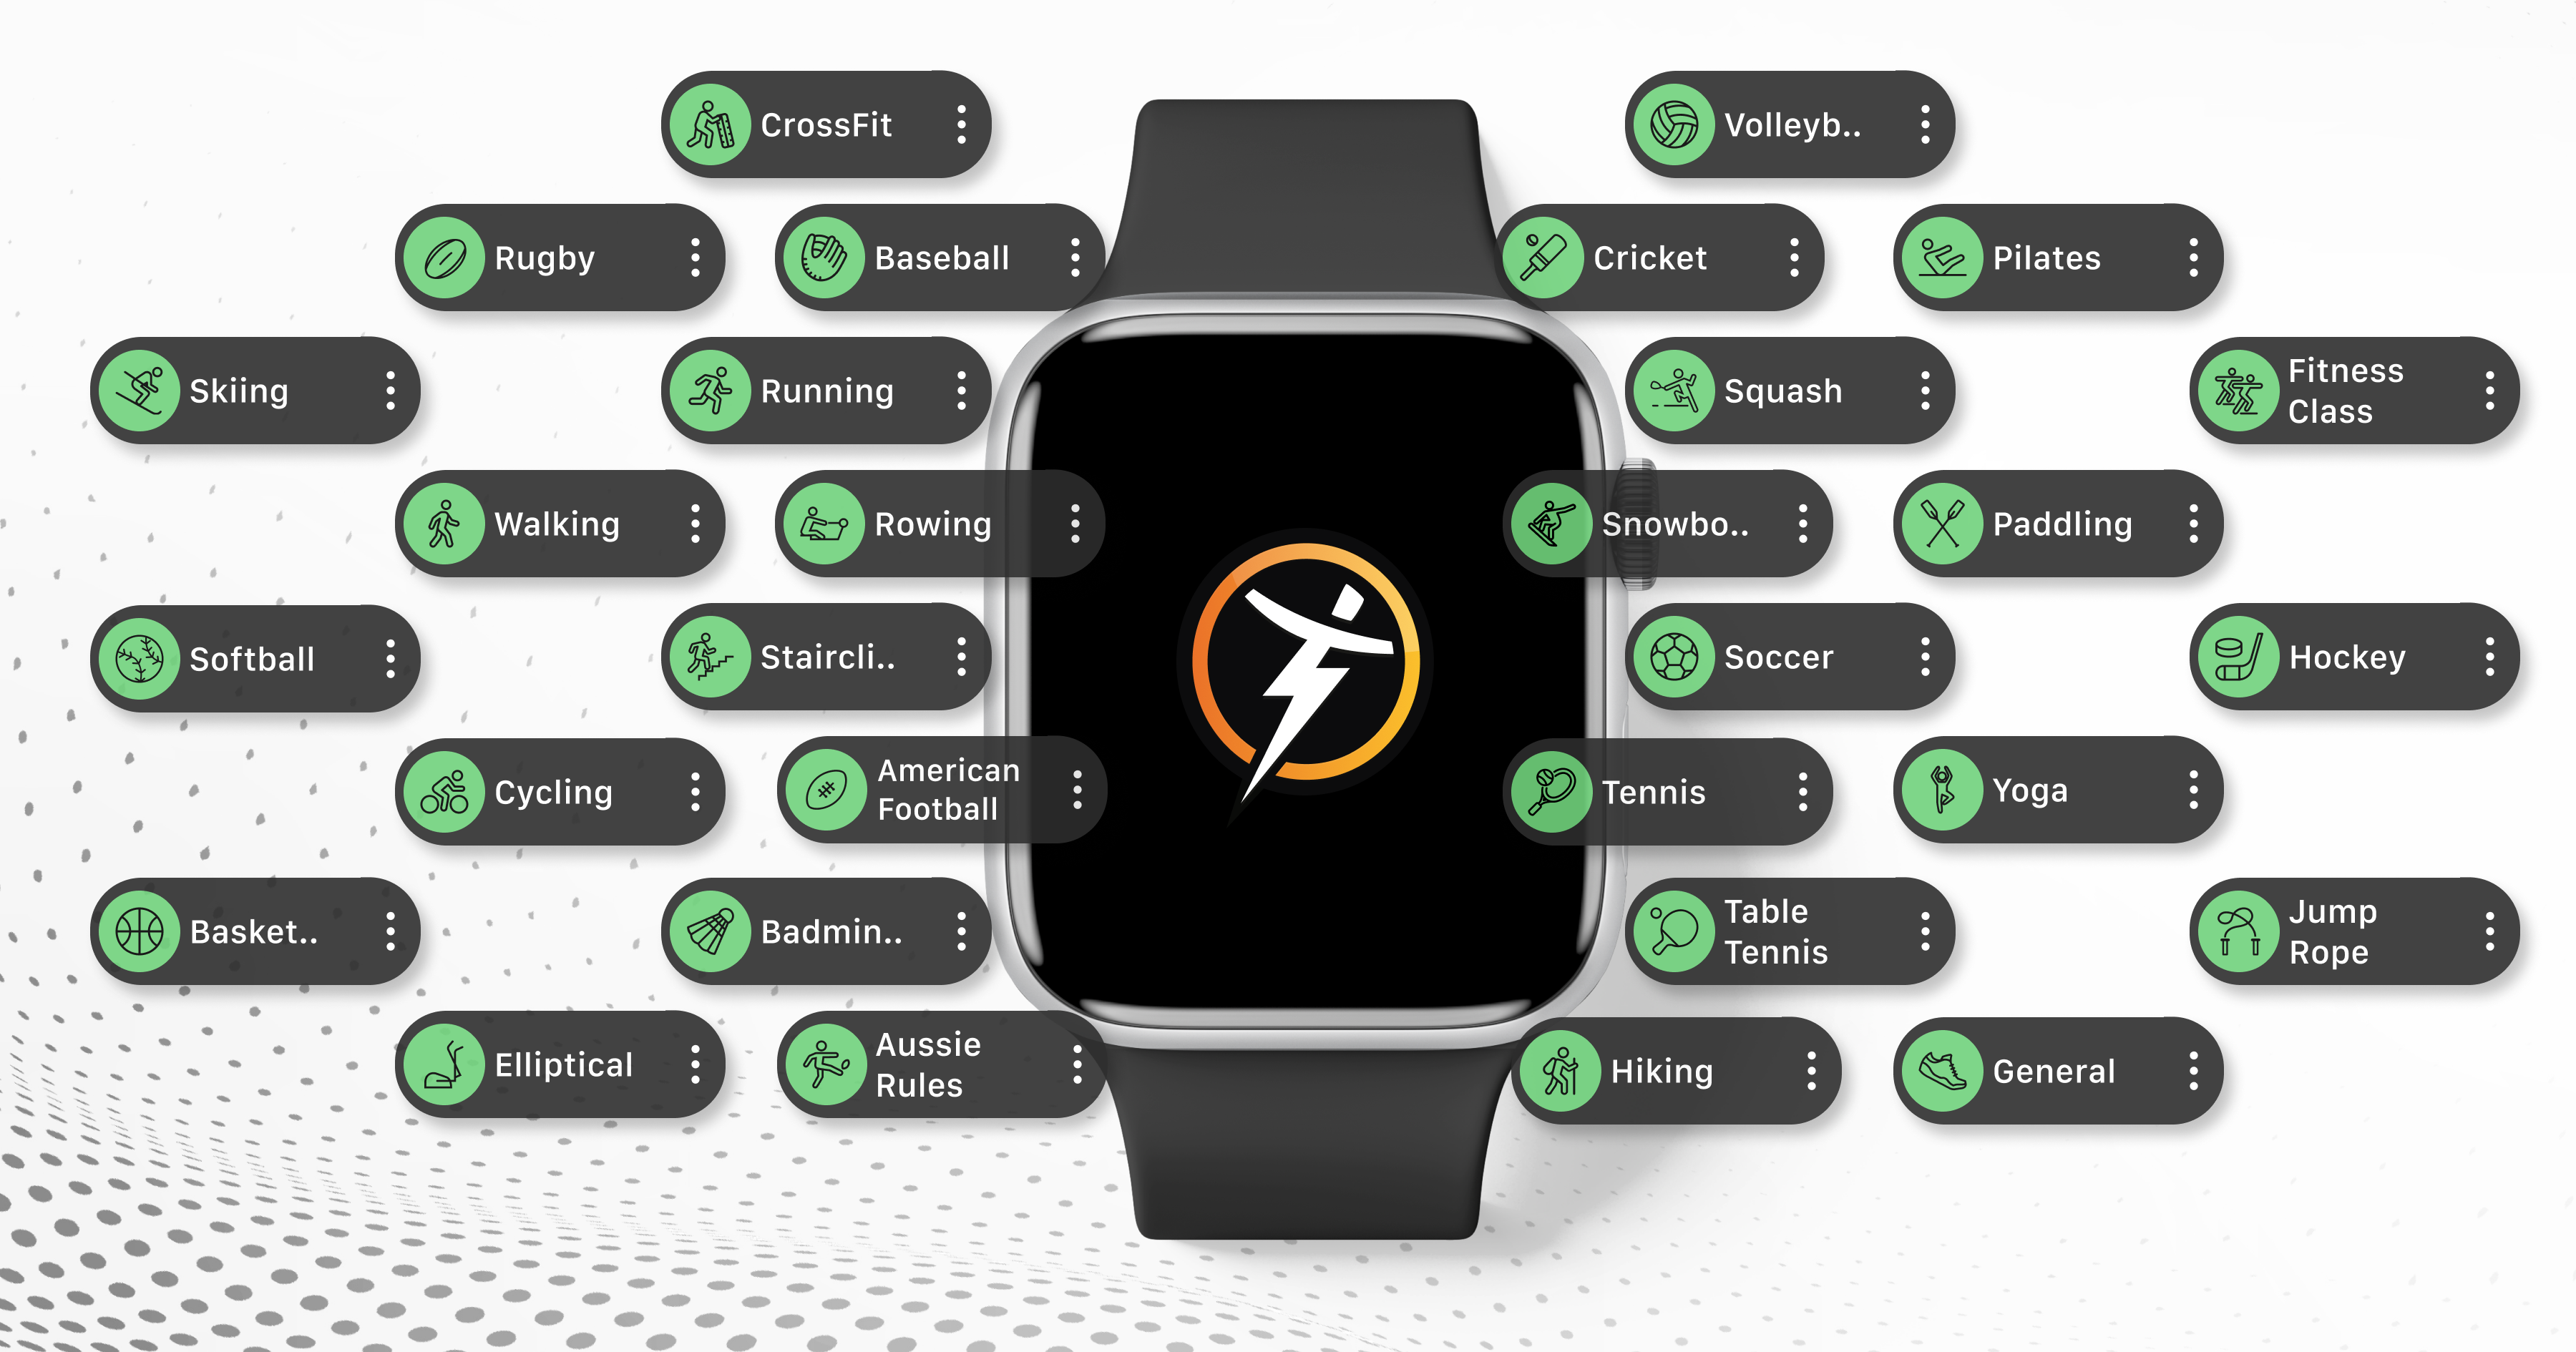 24 new cardio activities on the latest Apple Watch App powered by Trainerize, clients can now track all activities